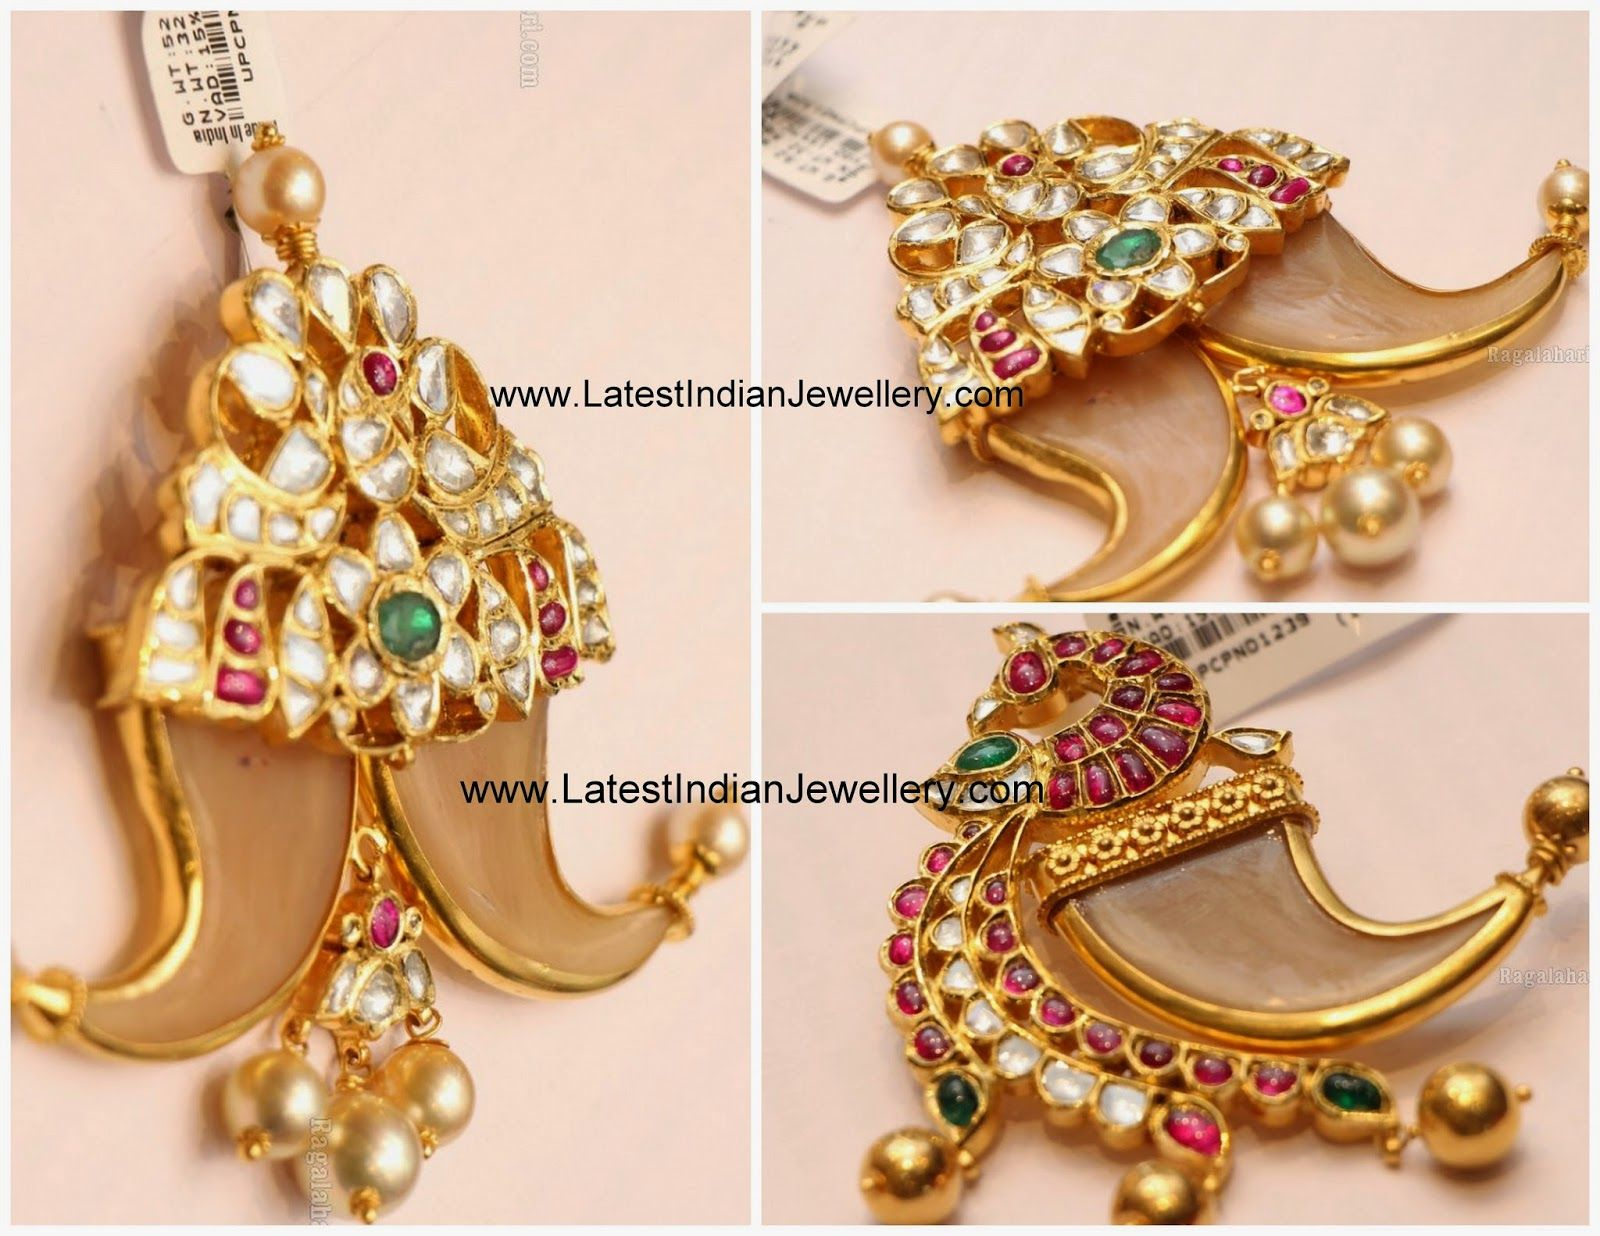 Latest Collection Of Best Indian Jewellery Designs See More Gold Bangles